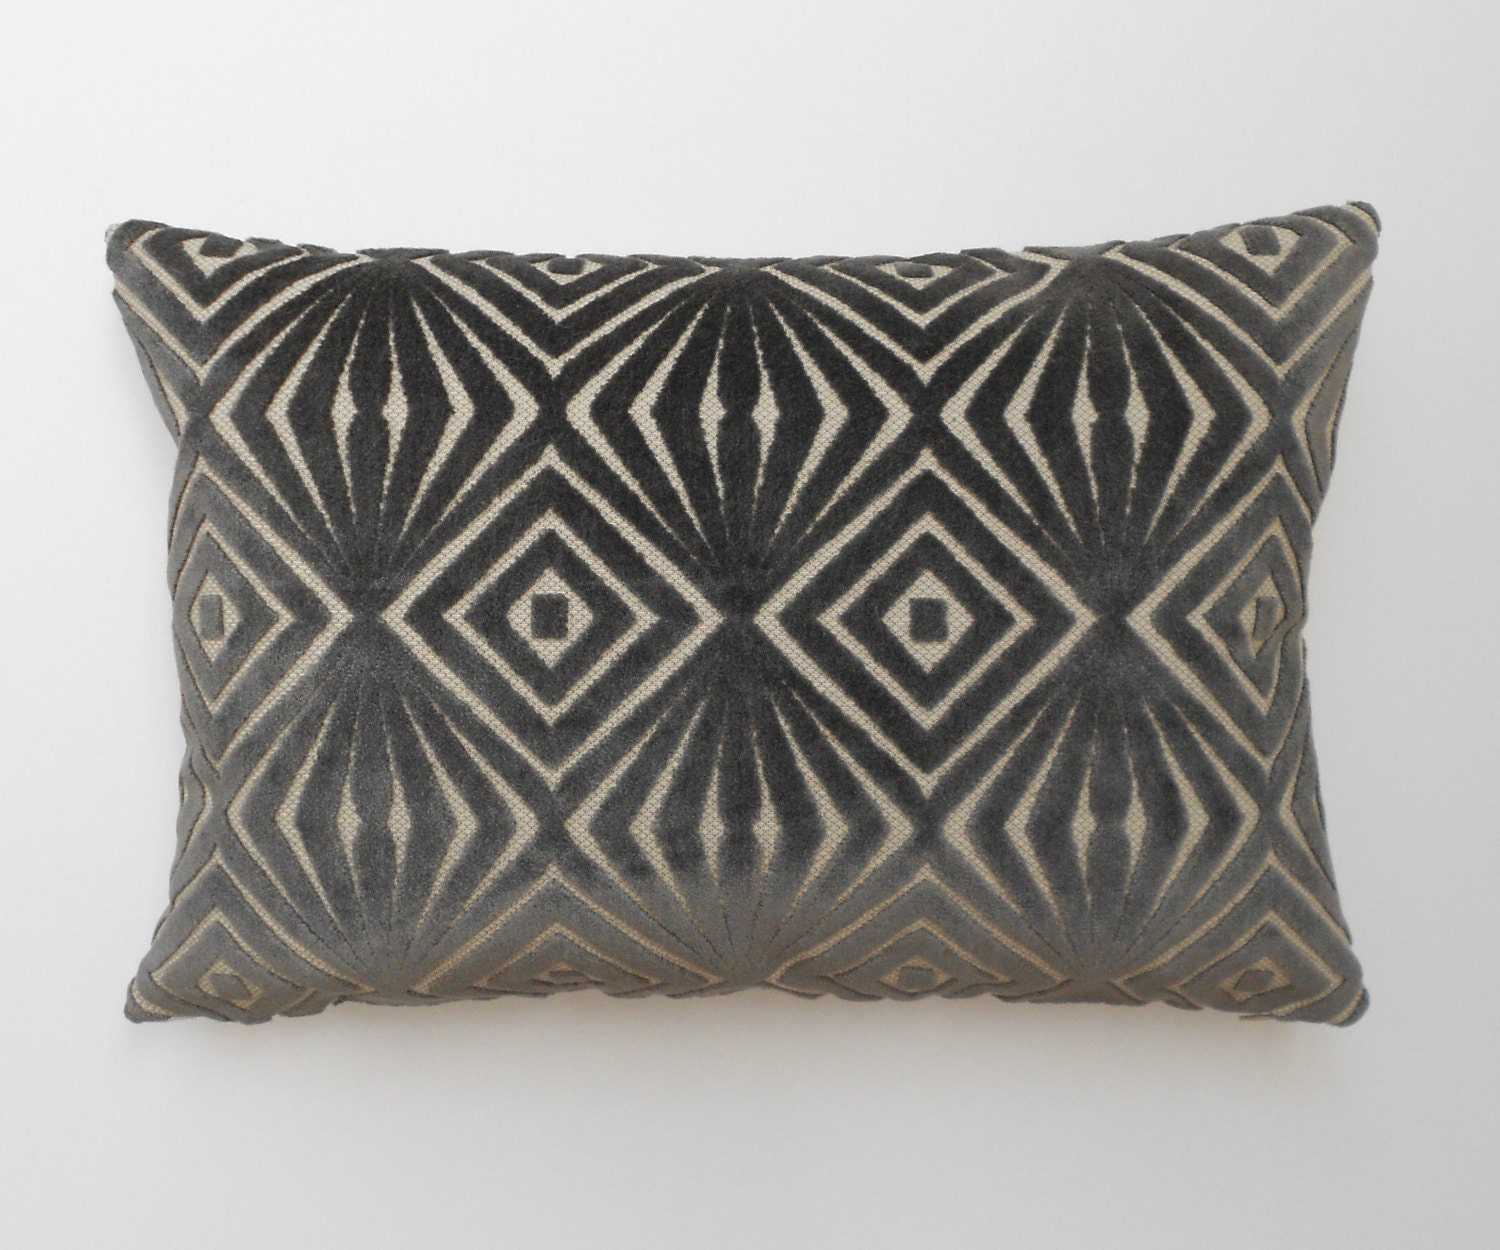 Throw Pillows Velvet : Grey velvet decorative pillow cover cut velvet geometric